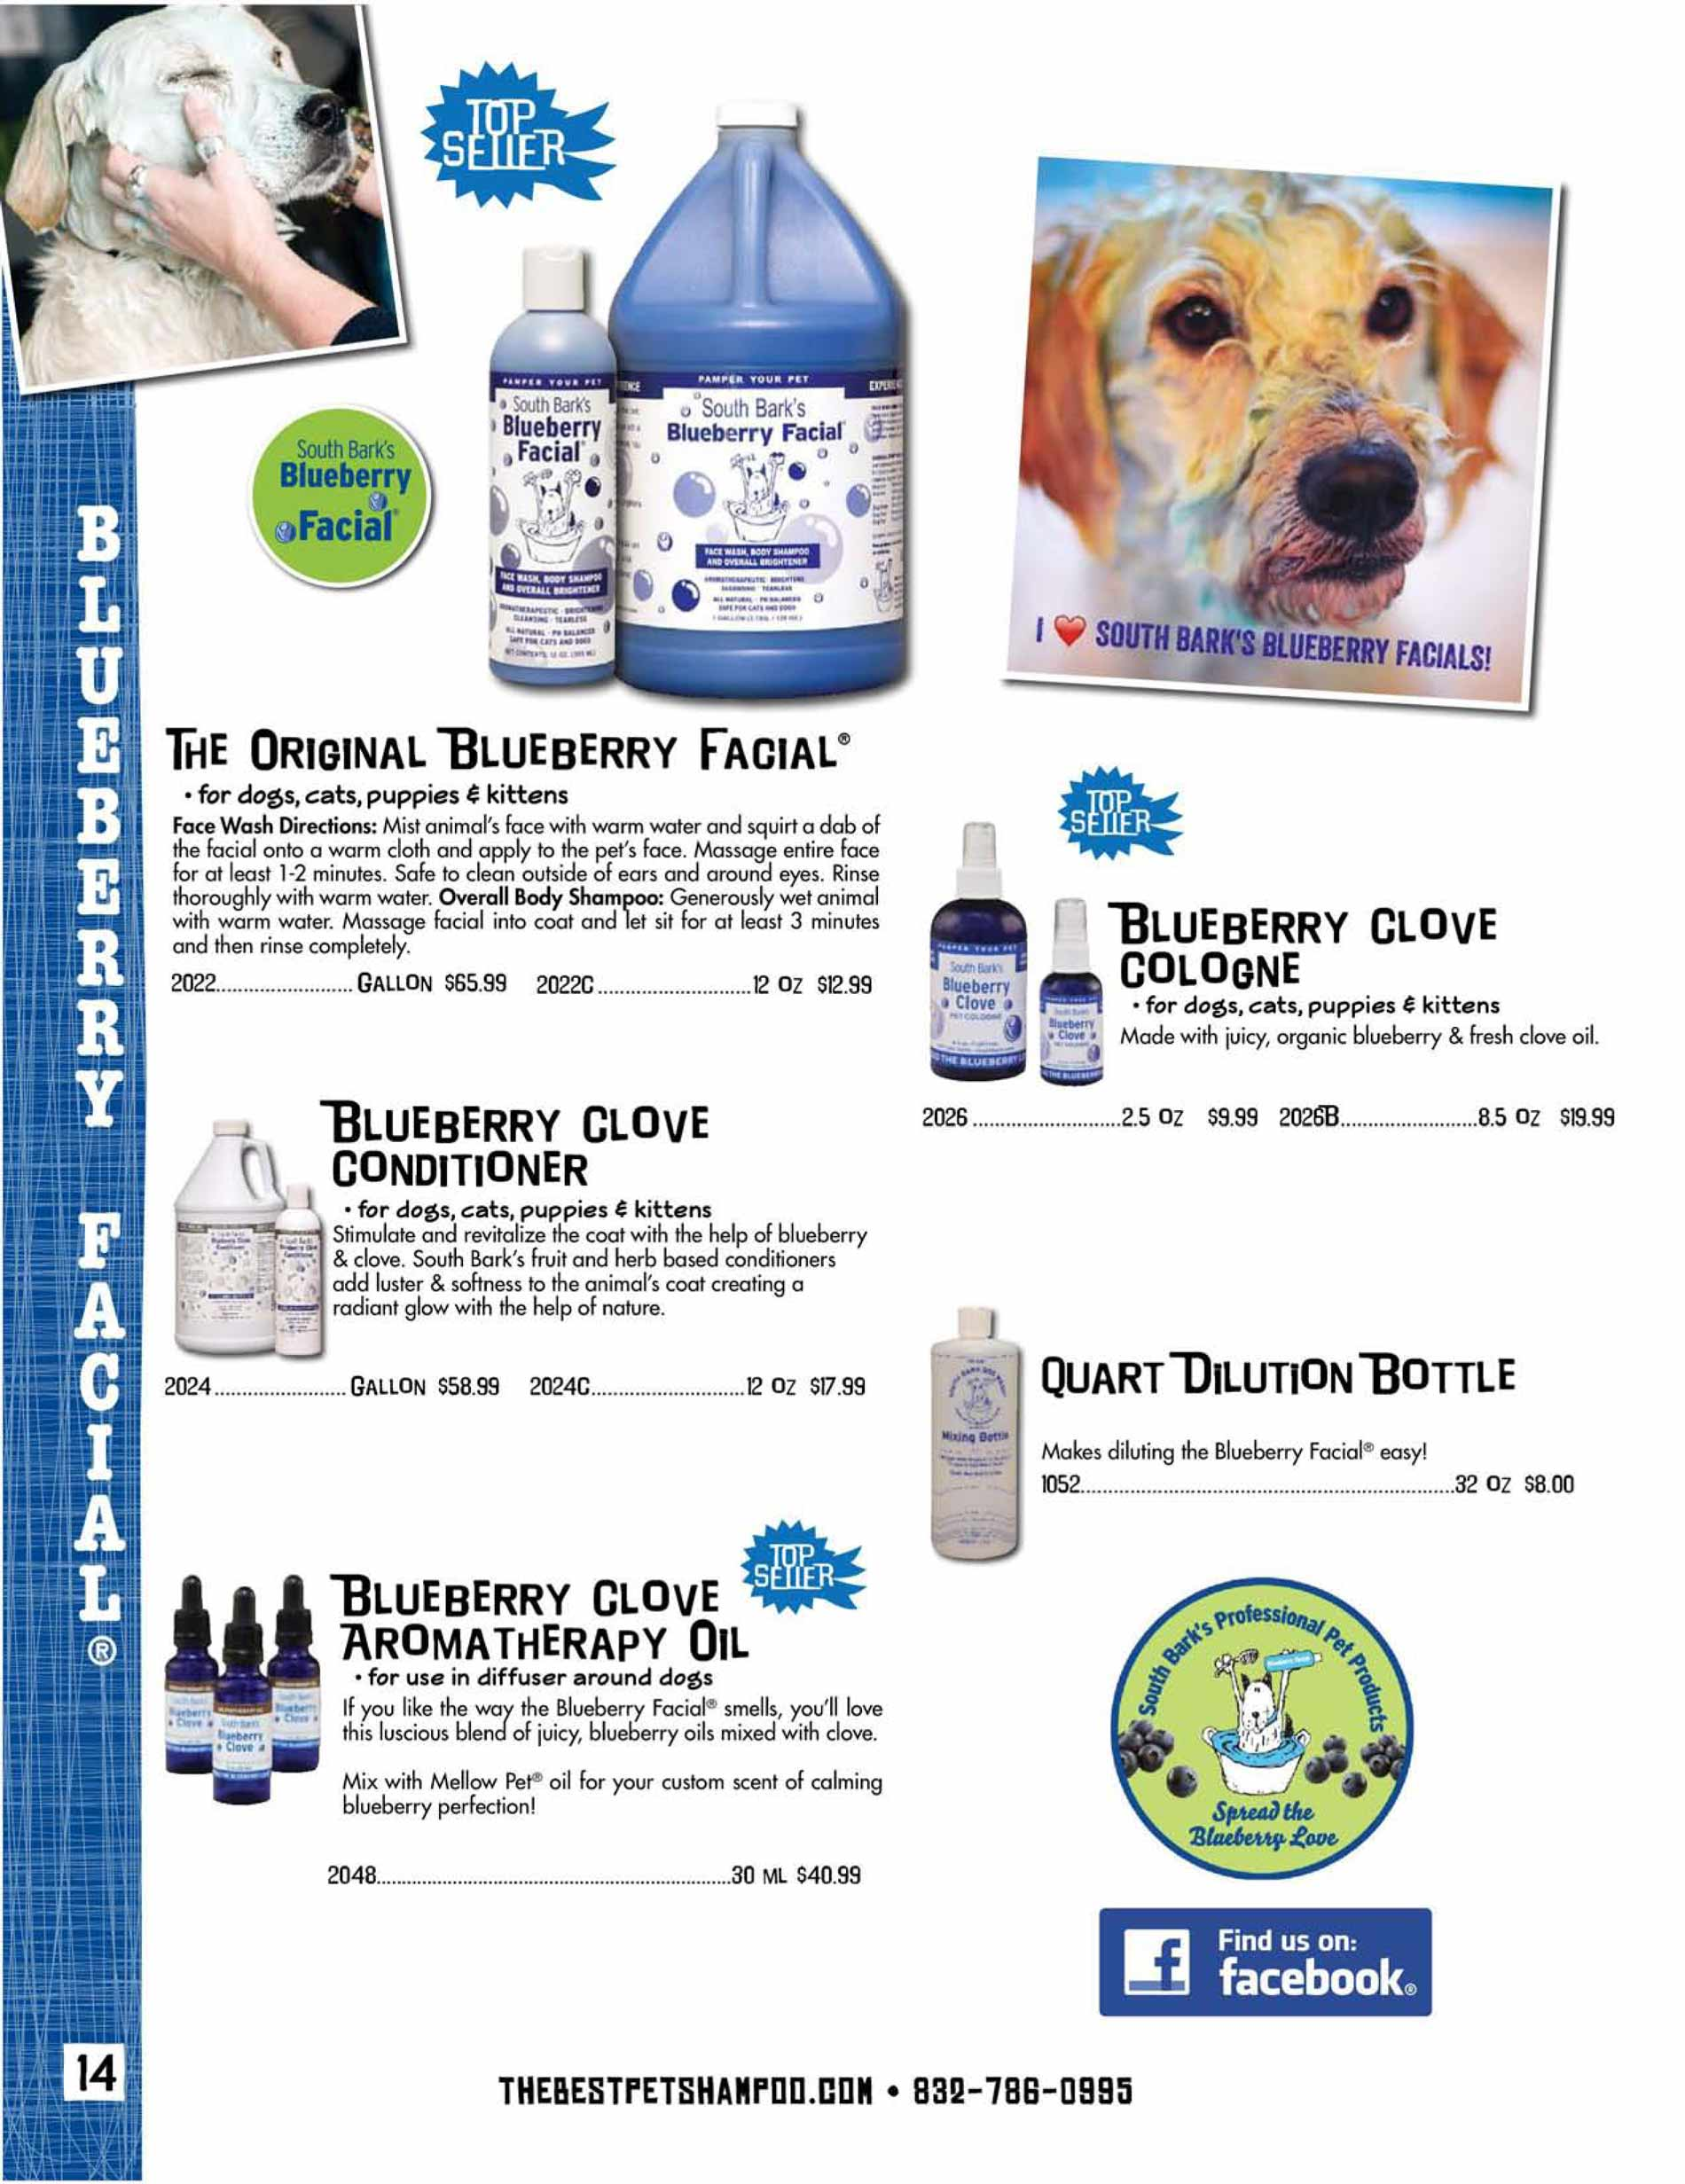 Blueberry Facial Dog Shampoo